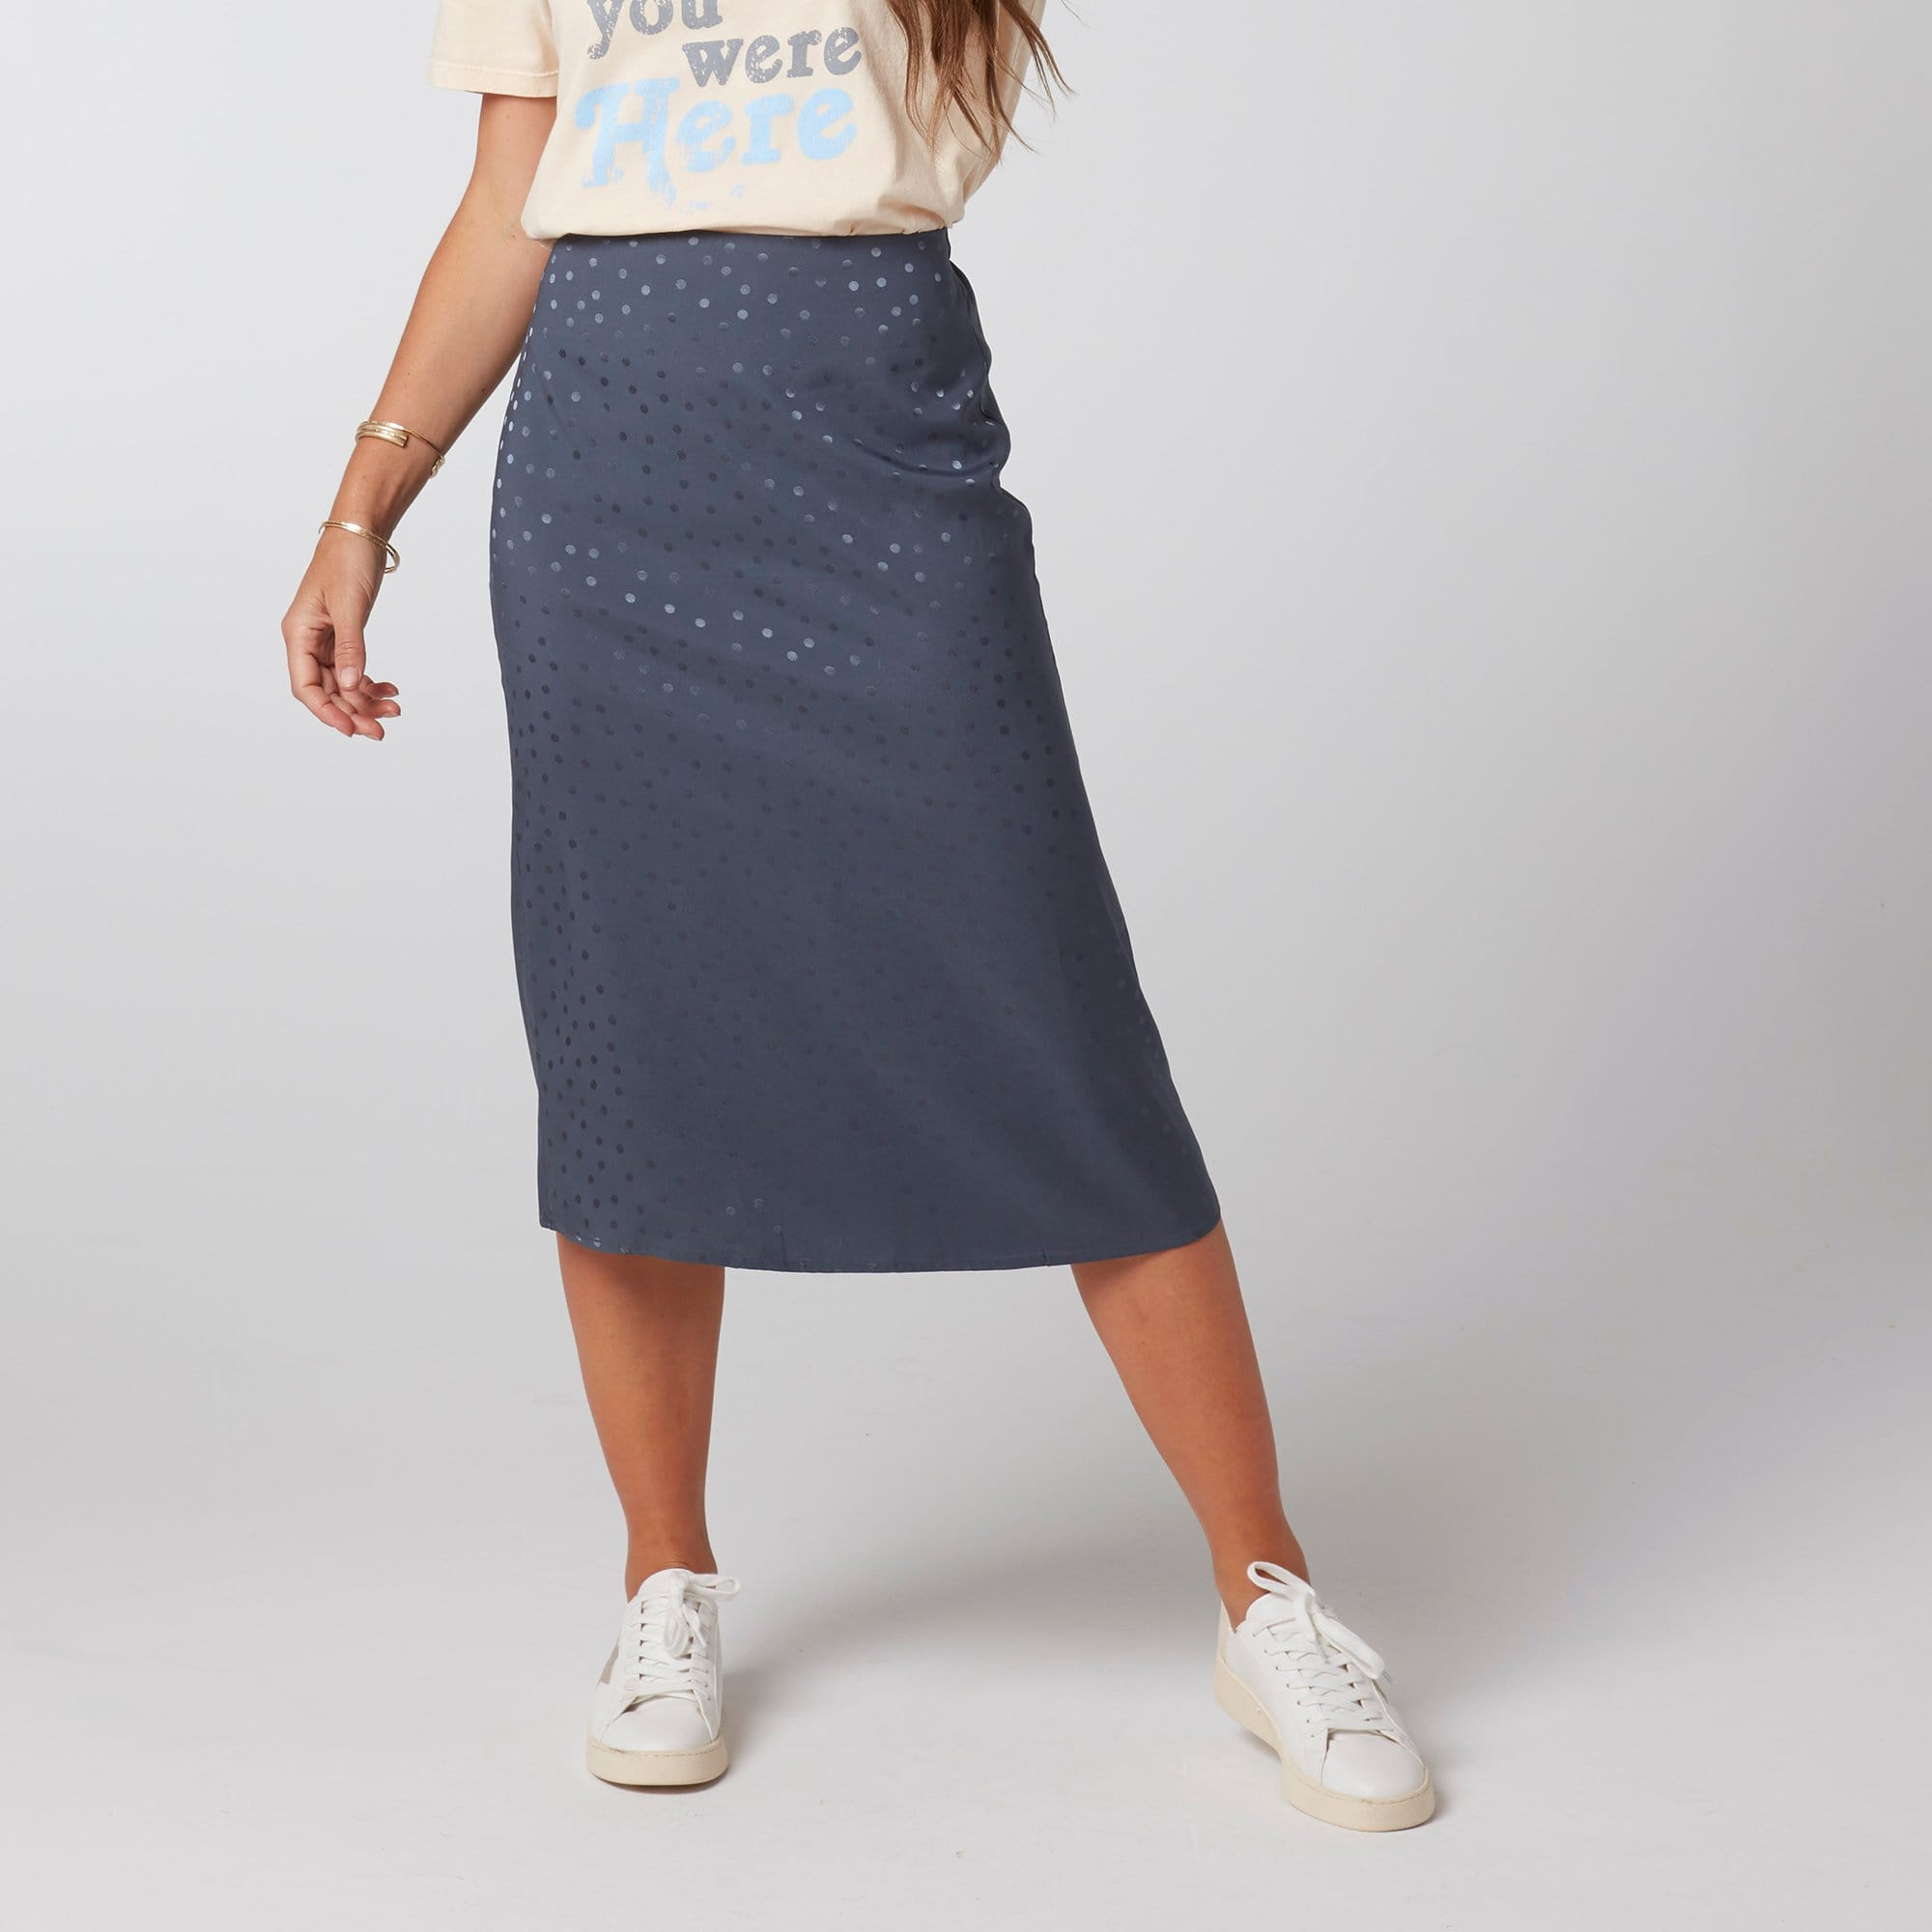 Reflections Skirt